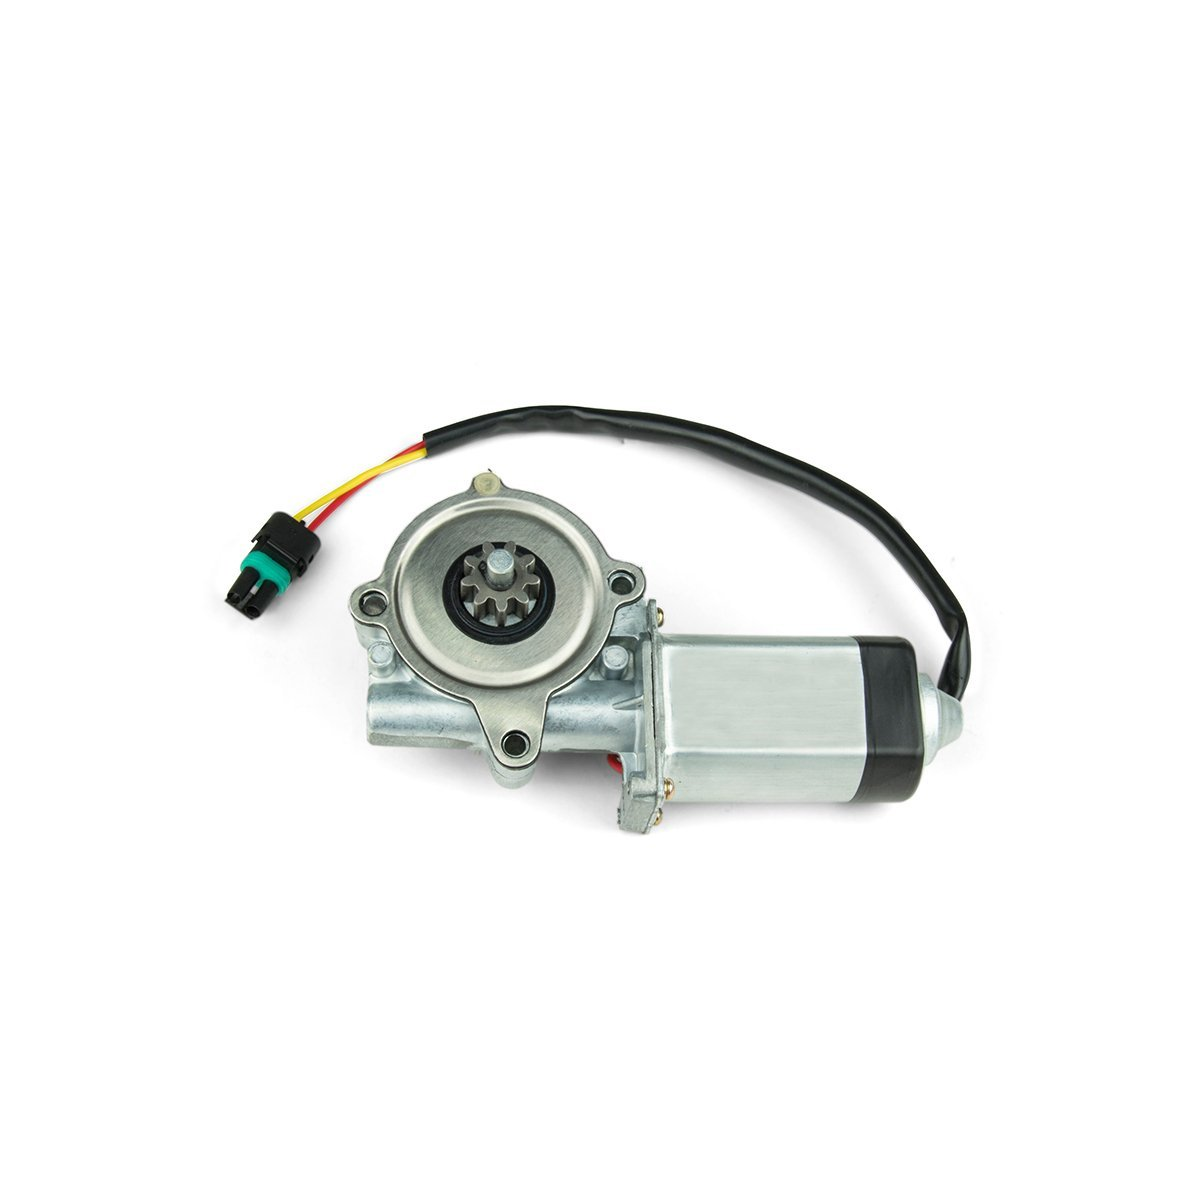 Kwikee 380073 Replacement Motor for Revolution Step by Kwikee